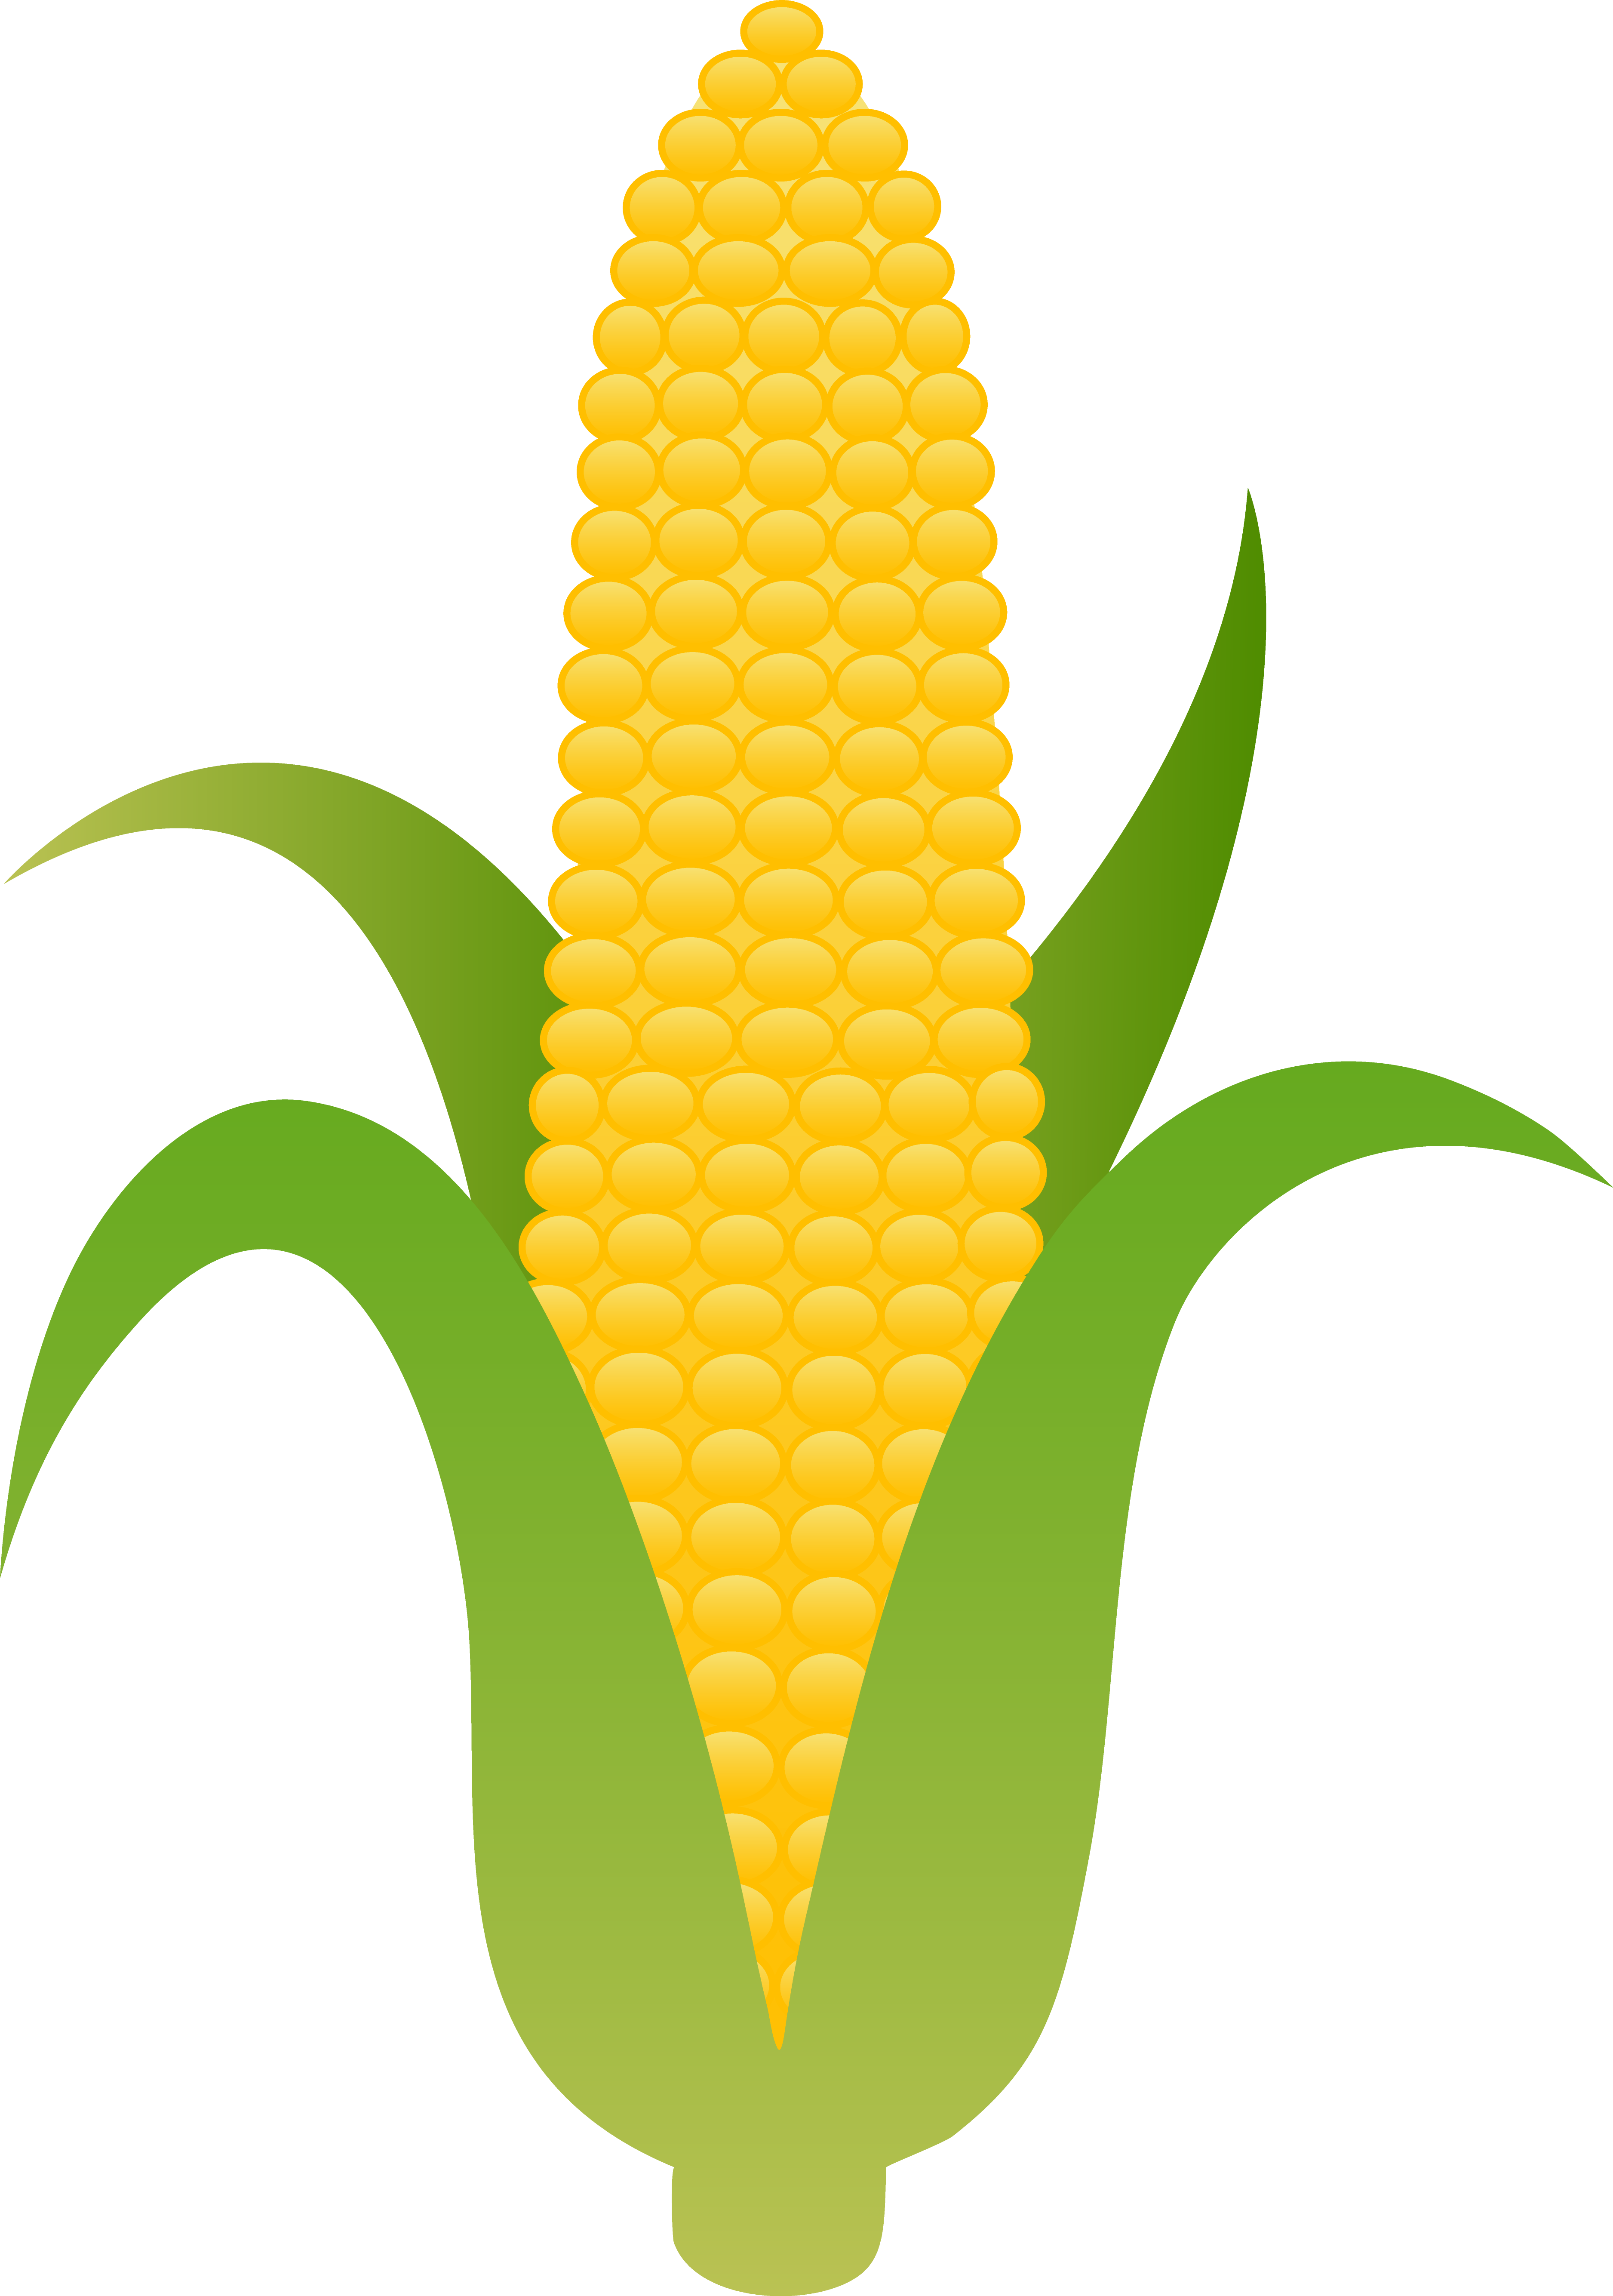 Maize cultivation clipart #2